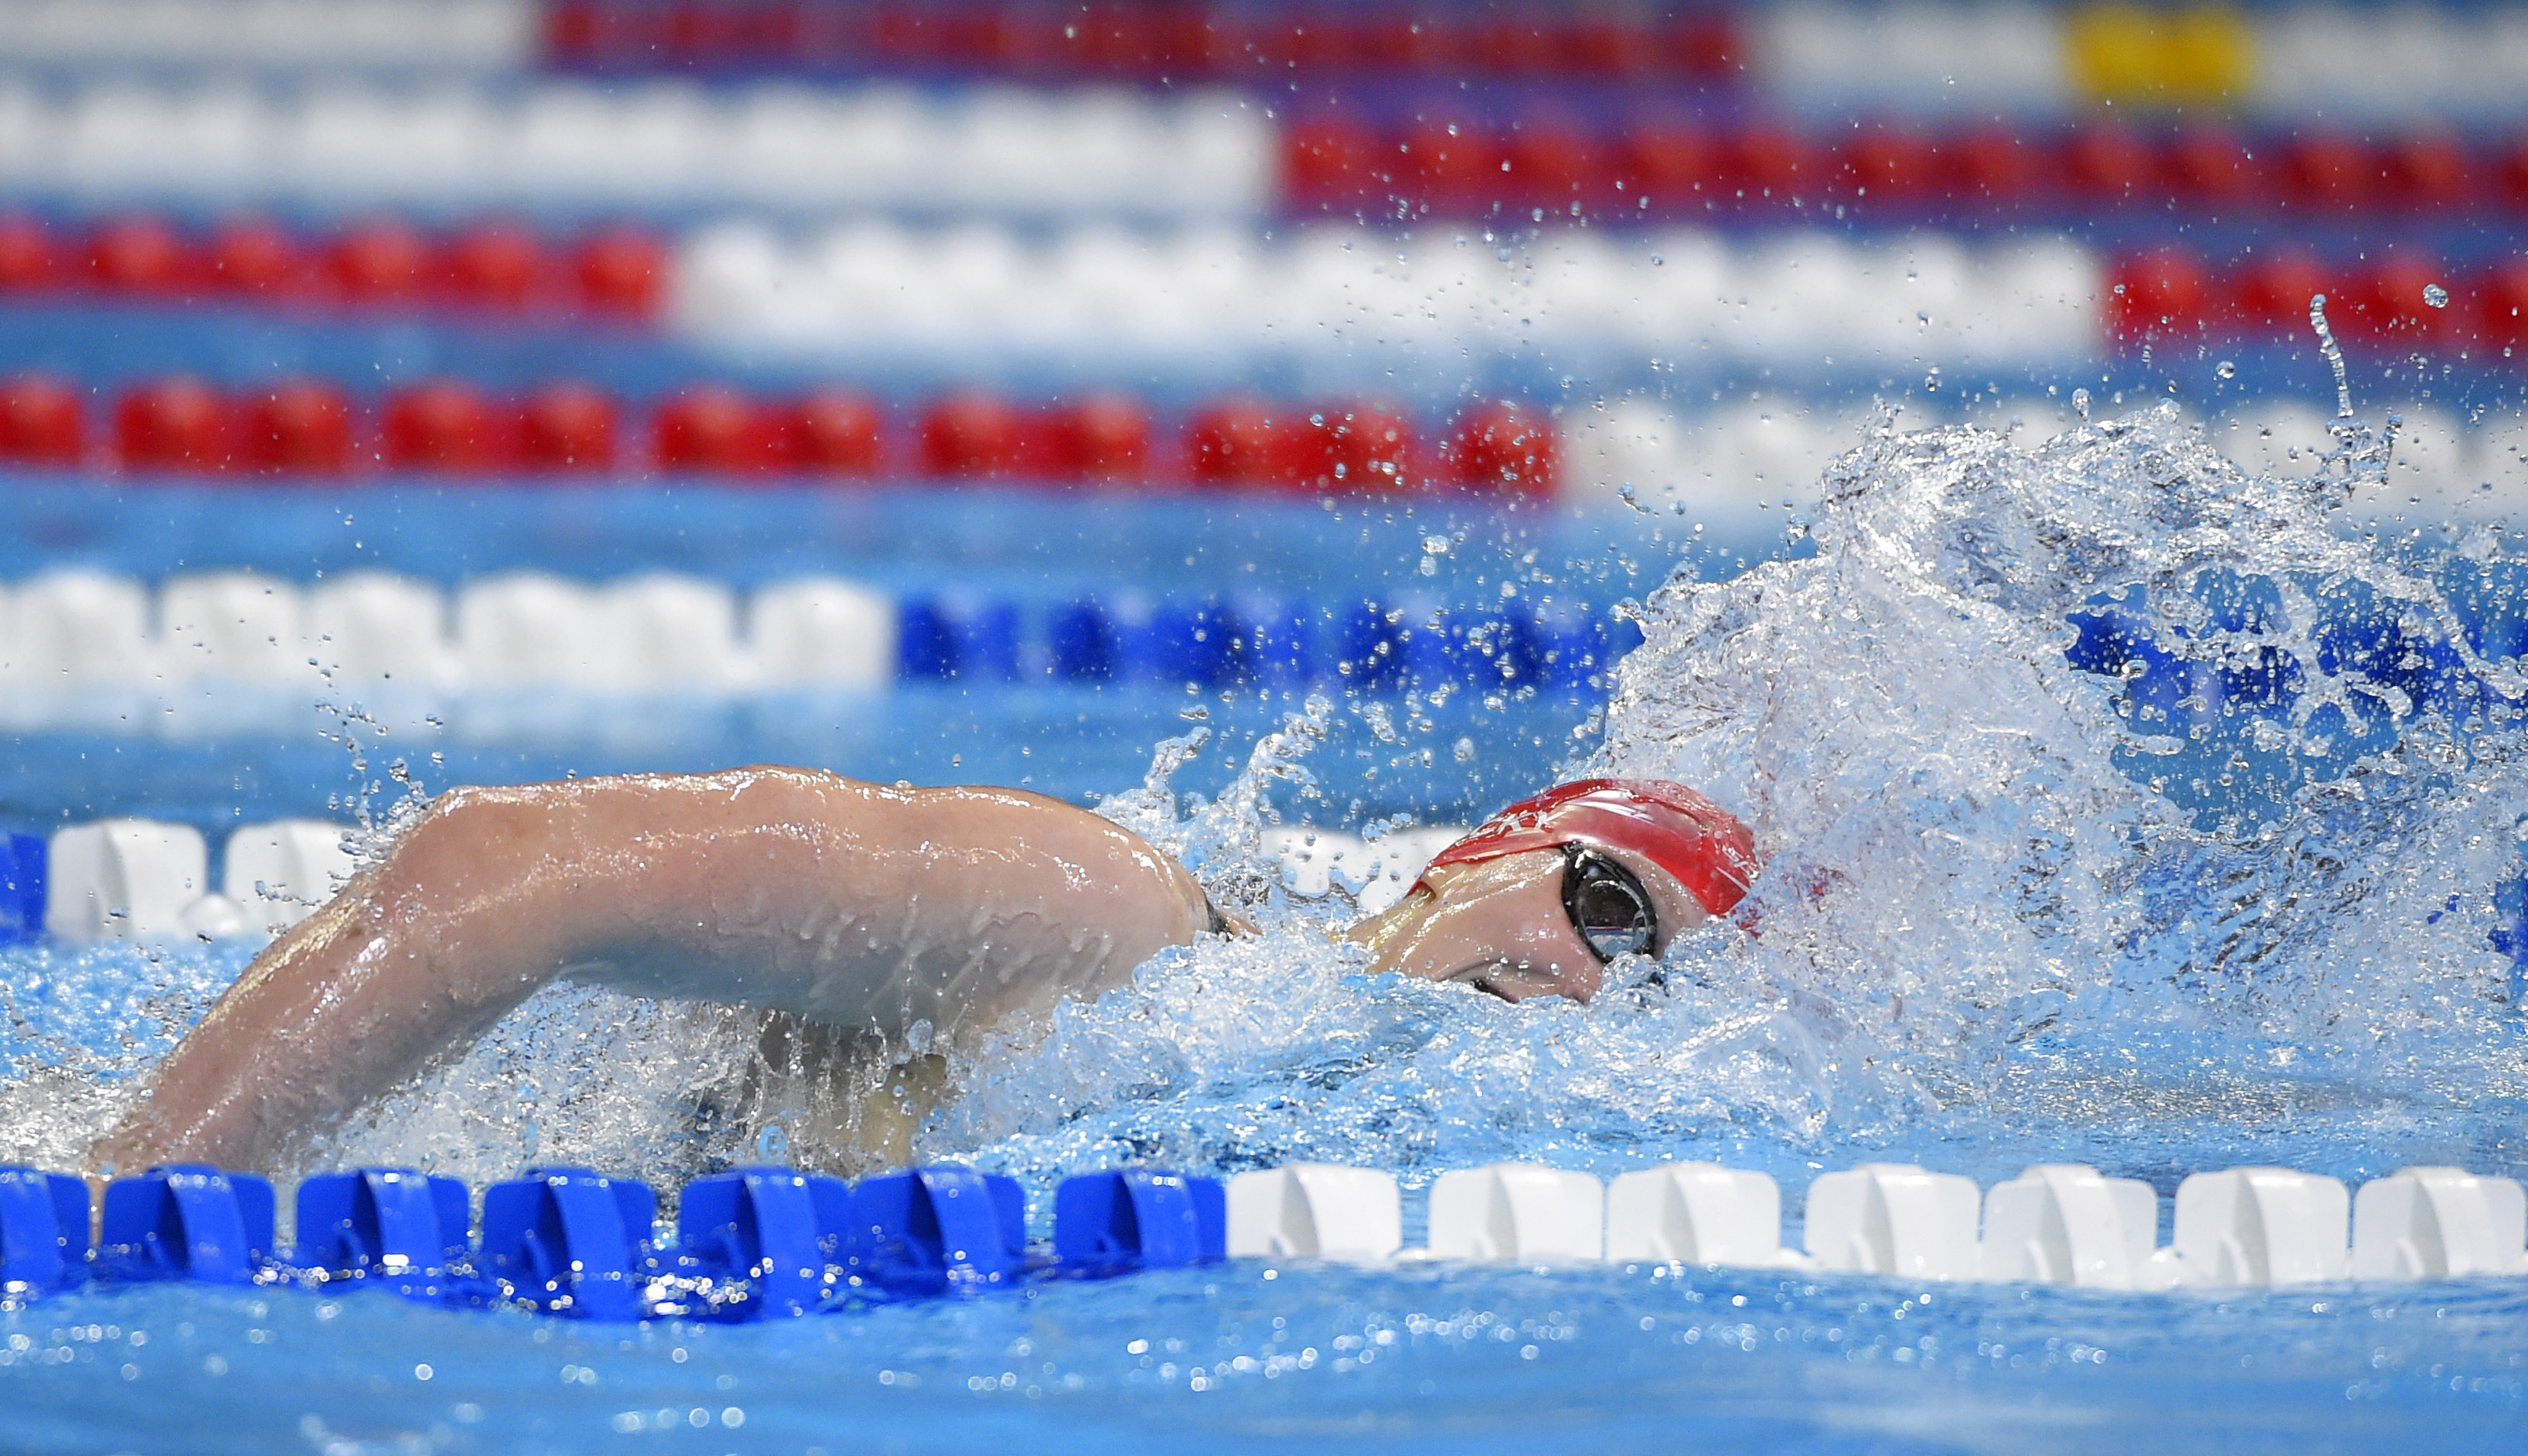 Katie Ledecky swims during the women's 200-meter freestyle preliminaries at the U.S. Olympic swimming trials, Tuesday, June 28, 2016, in Omaha, Neb. (AP Photo/Mark J. Terrill)